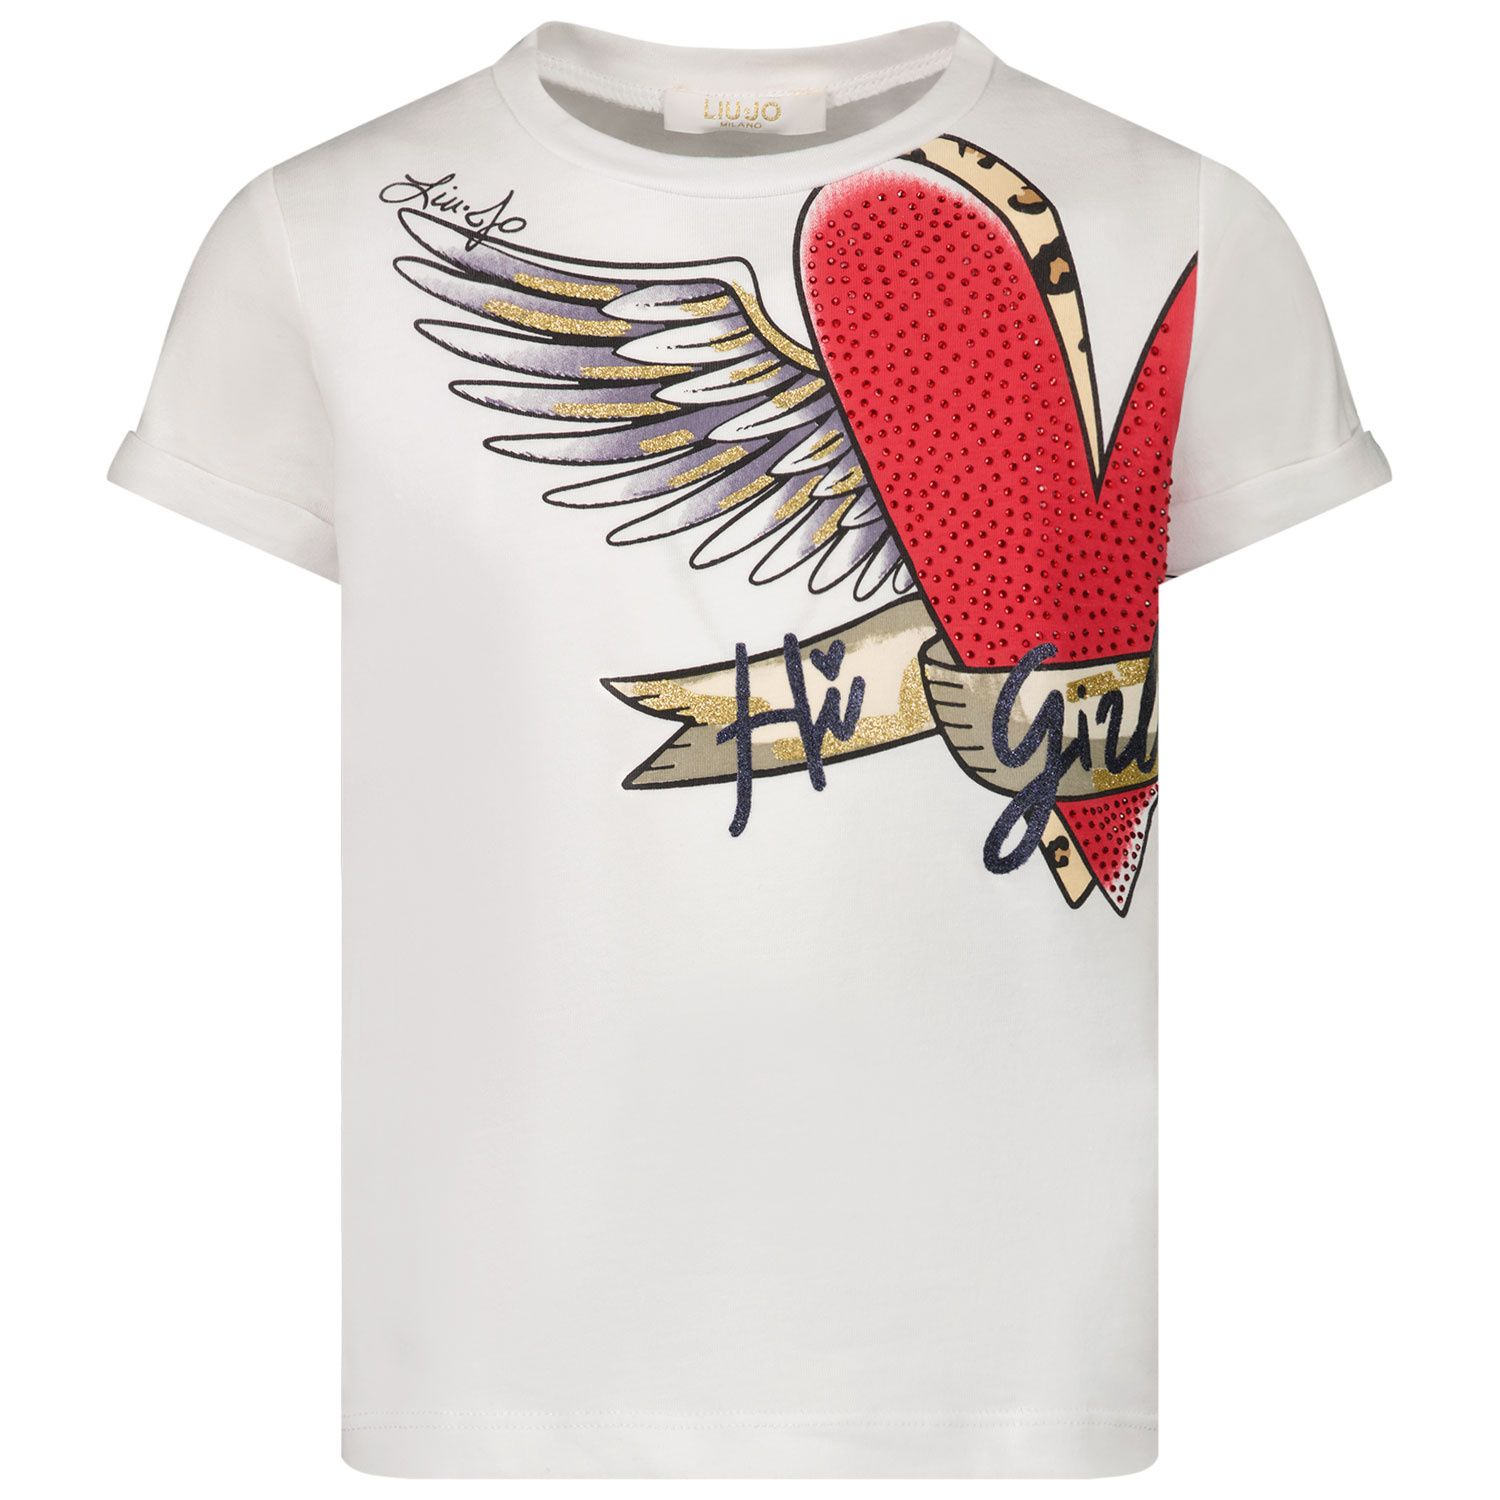 Picture of Liu Jo KA1067 kids t-shirt white